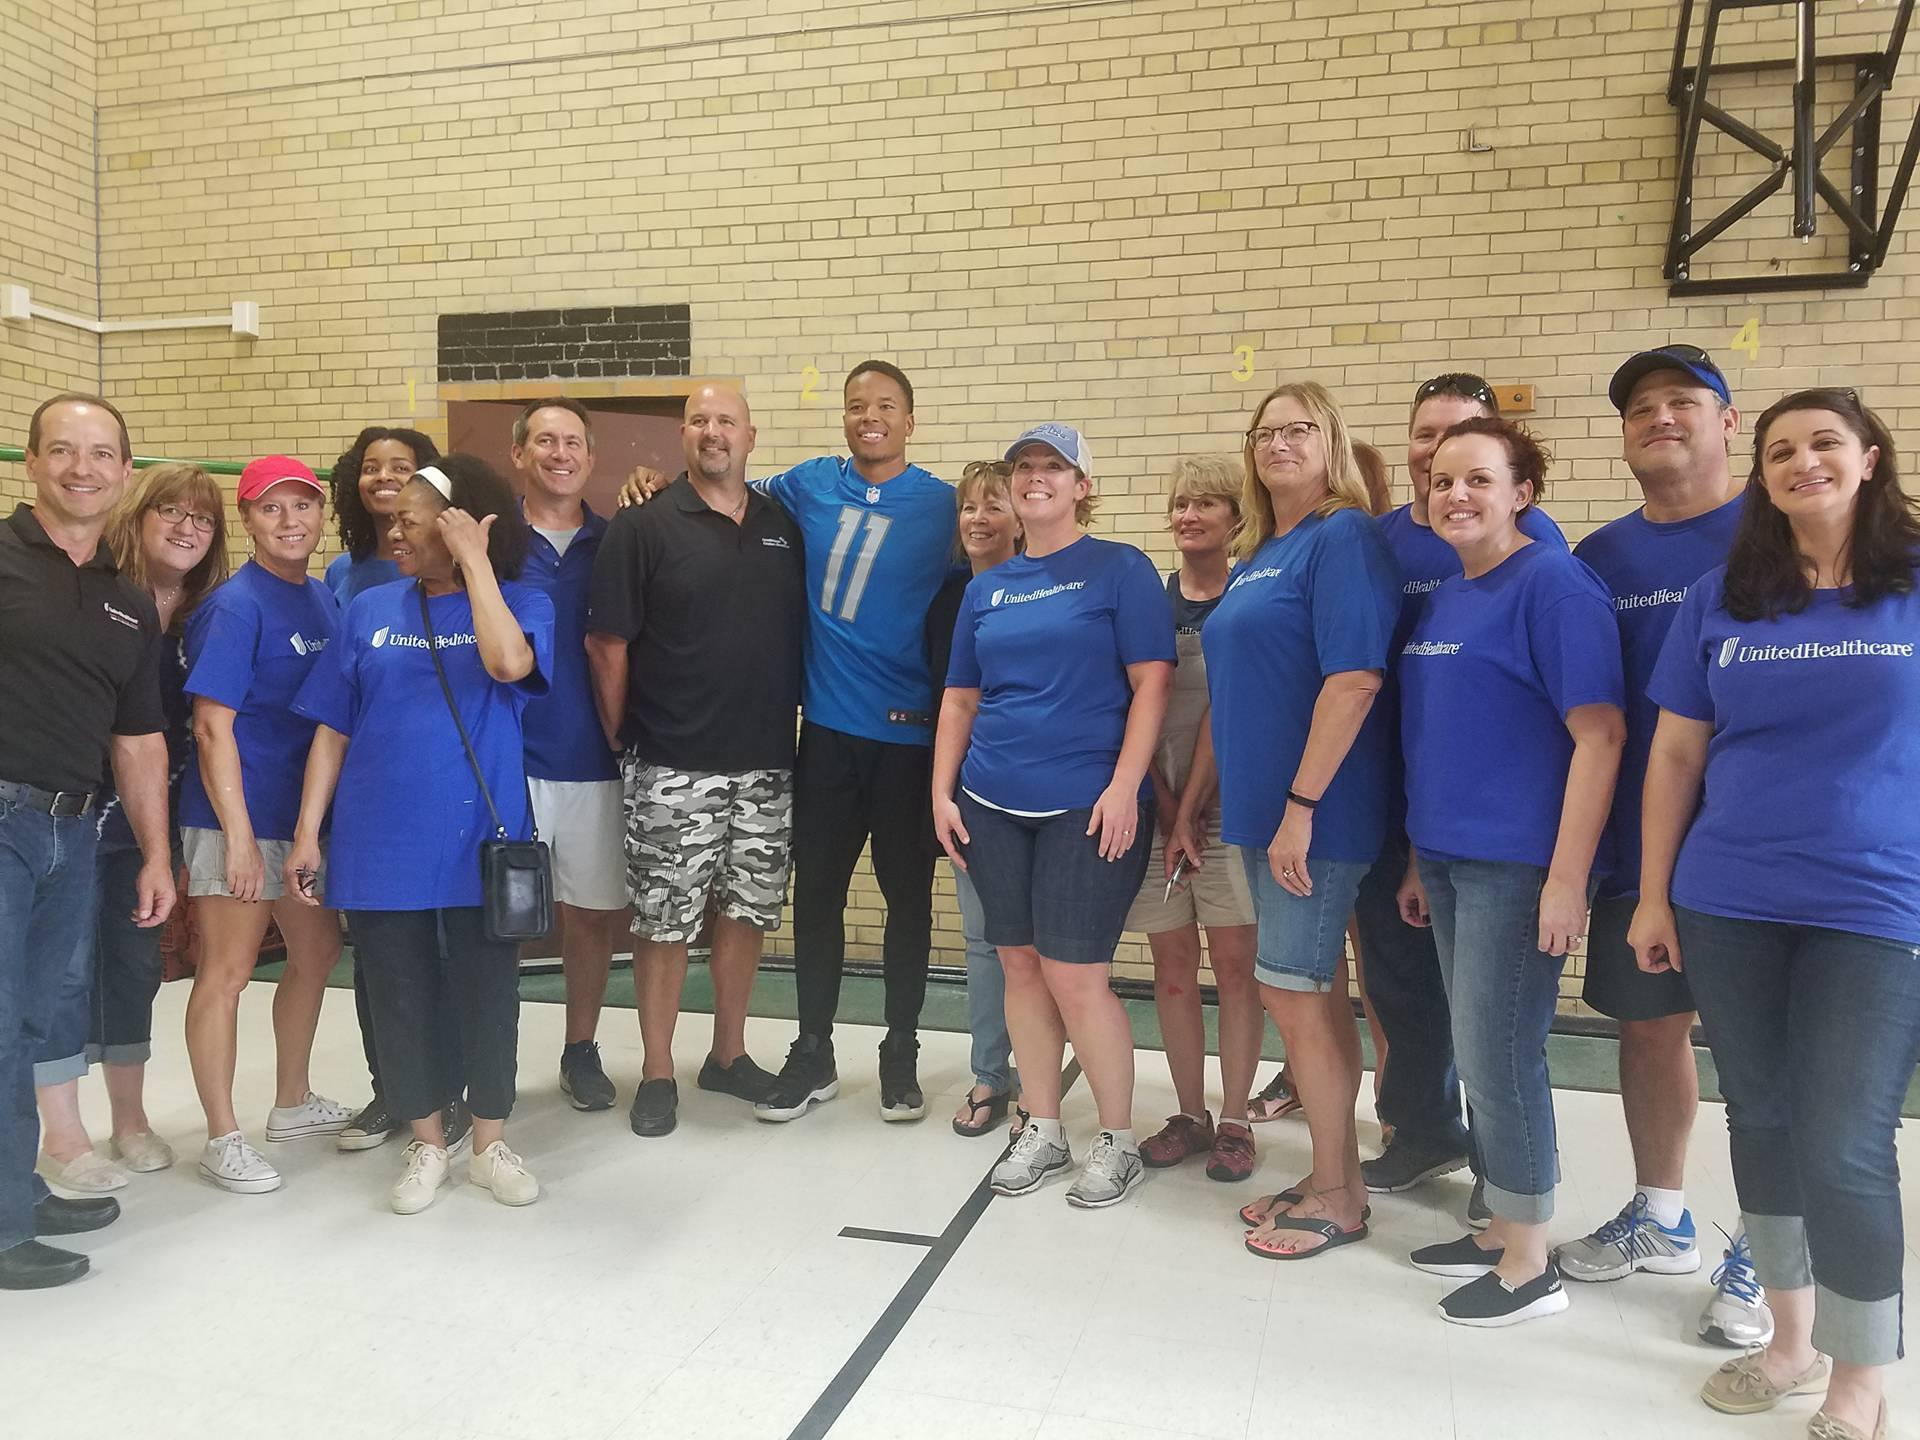 UnitedHealthcare volunteers on Thursday visited J.E. Clark Preparatory Academy in Detroit and painted a series of panel murals for the gym's walls. At the school, the volunteers were joined by Detroit Lions wide receiver Marvin Jones Jr. and officials from City Year Detroit to announce UnitedHealthcare's $11,000 donation to Jones' Dreambuilders program. The donation was used to purchase four new basketball backboards and paint the gym's lockers (Photo courtesy of UnitedHealthcare).